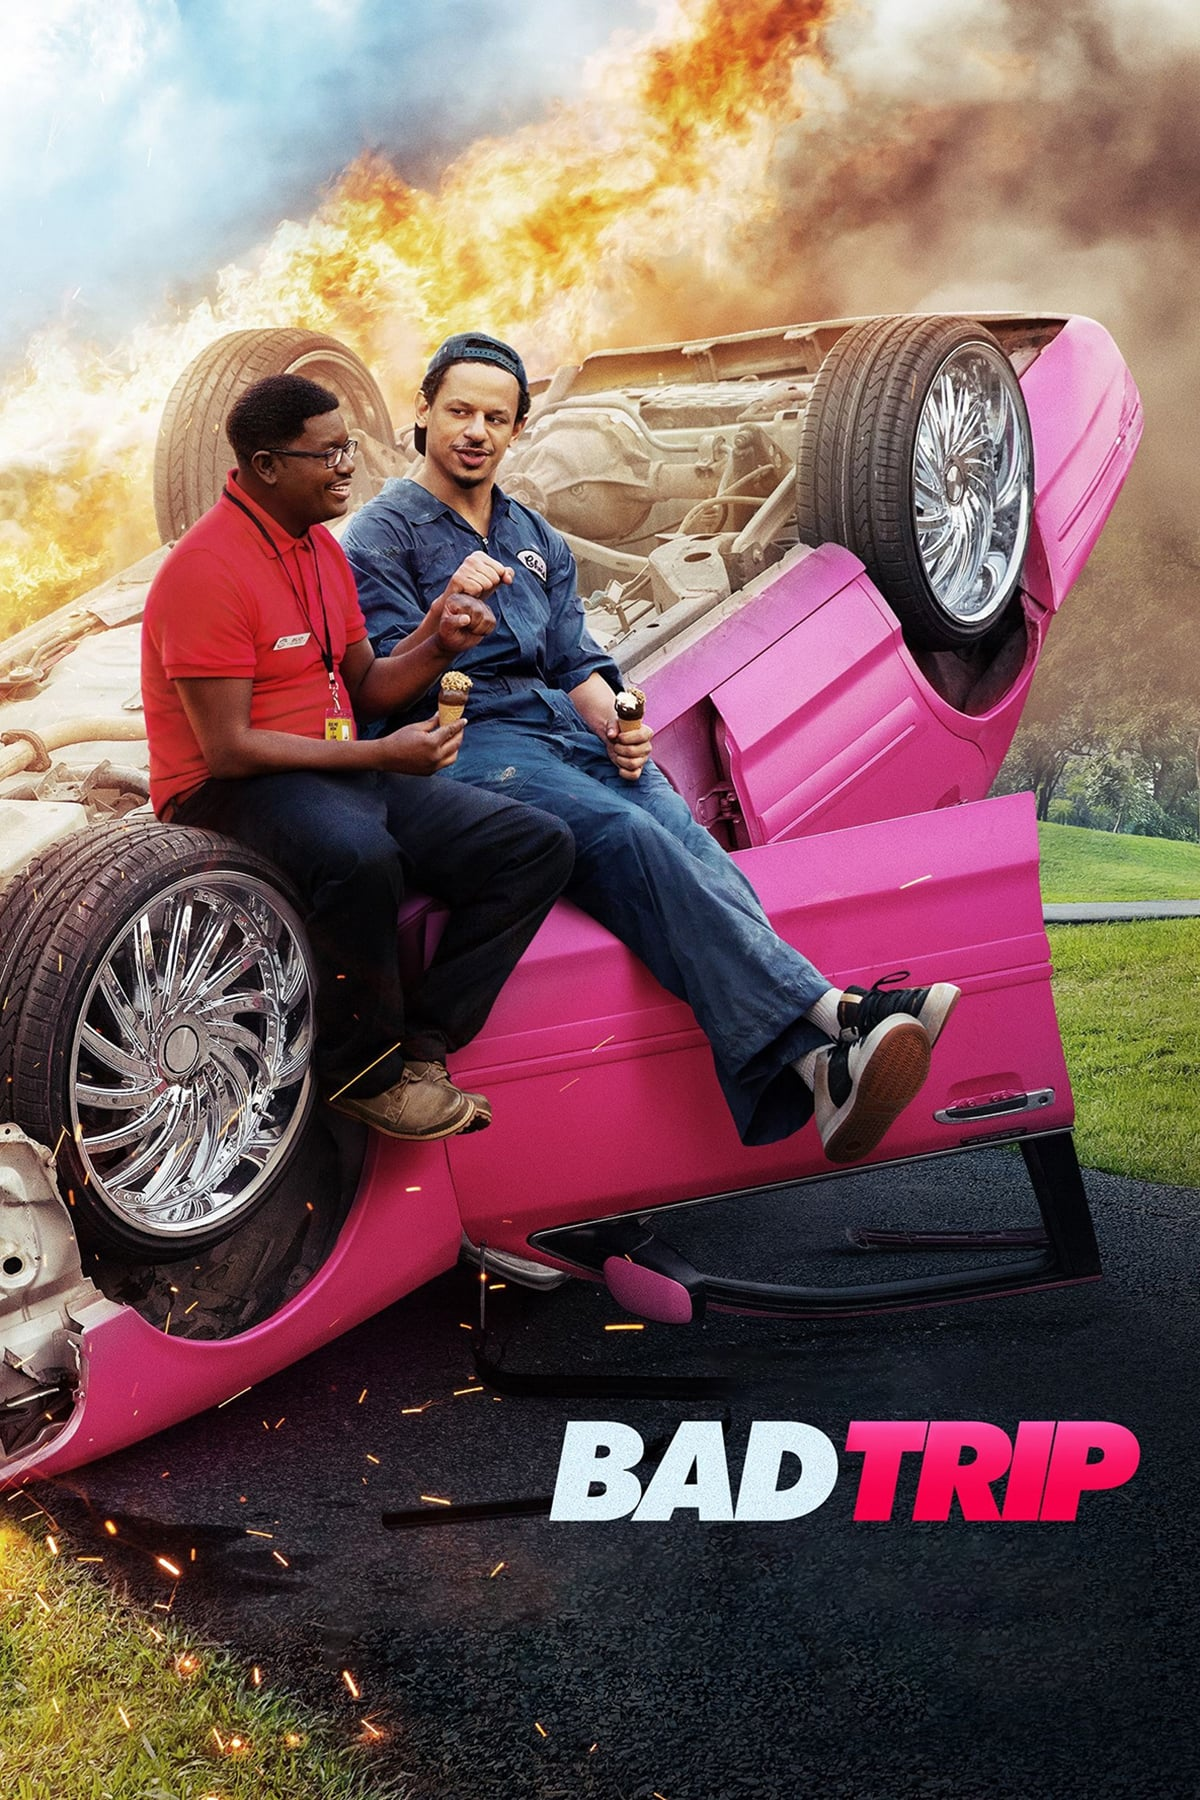 Bad Trip Movie Streaming Online